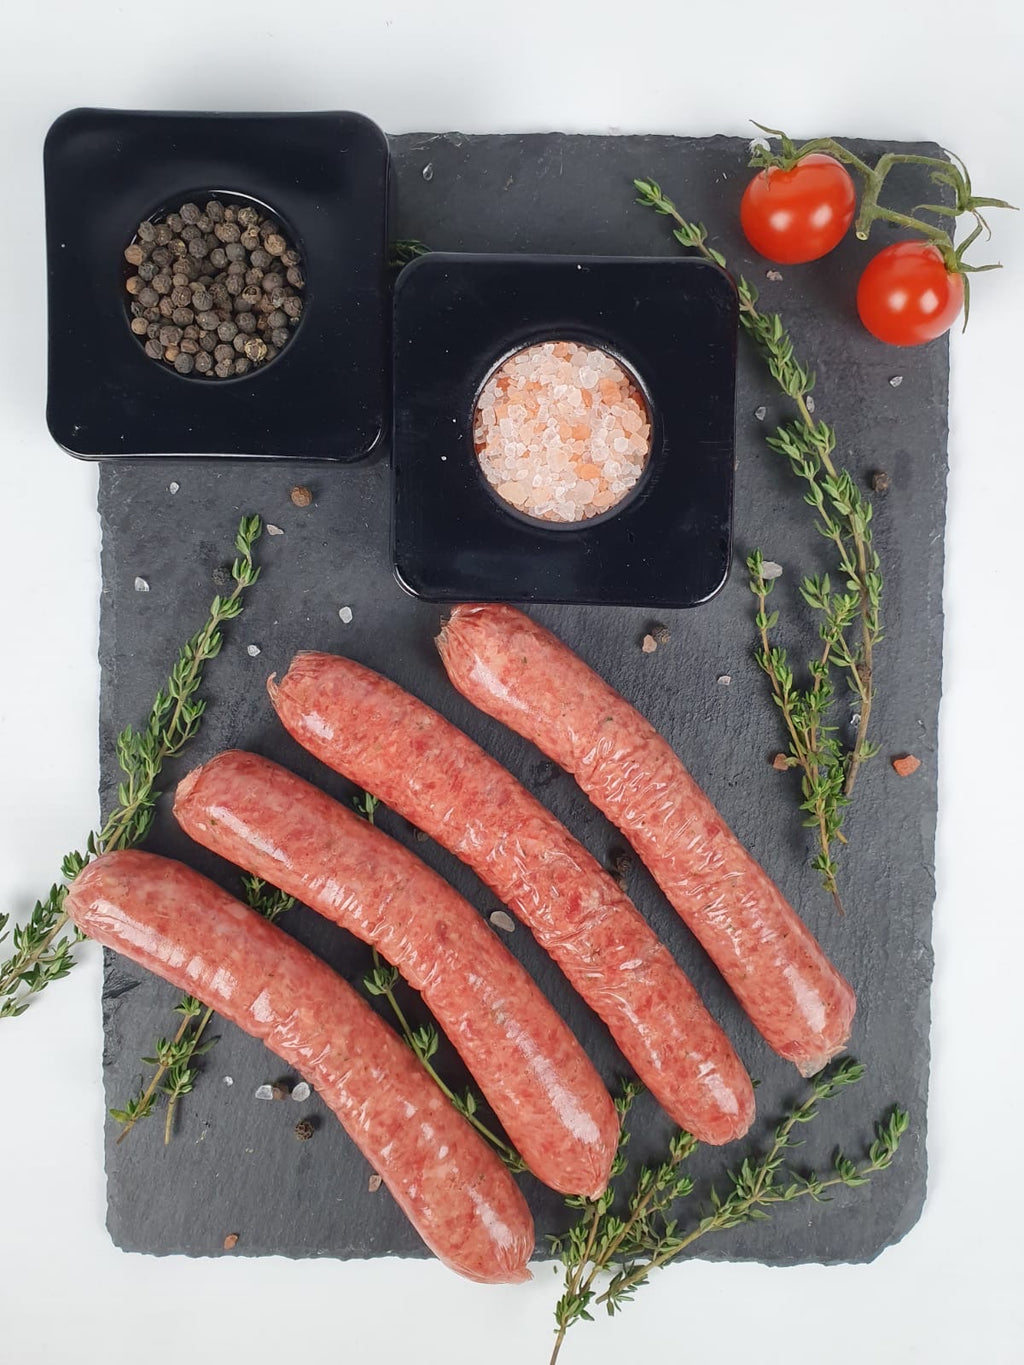 Halal Angus Beef Sausages with Salt/Sage and Pepper (500-550g)